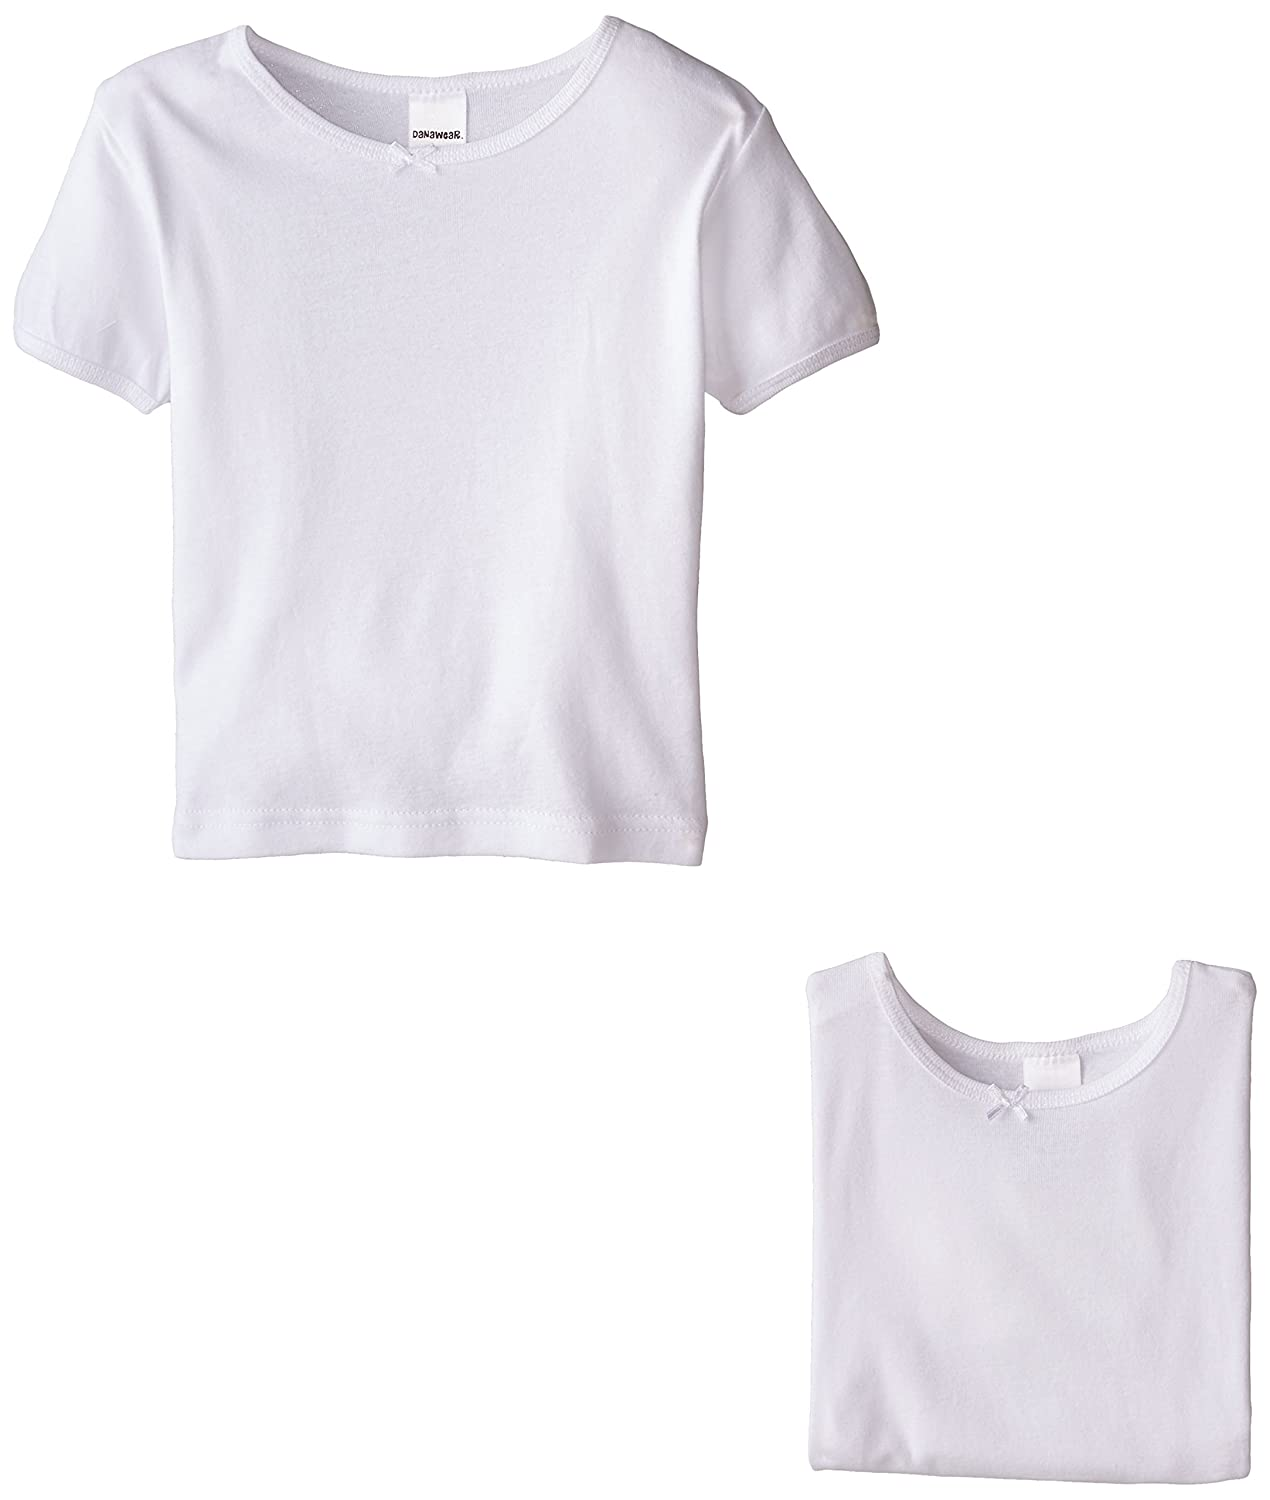 Danawear Little Girls' White 3 Pack Girls Undershirt 4T Danawear Girls 2-6x 7884130A010004T